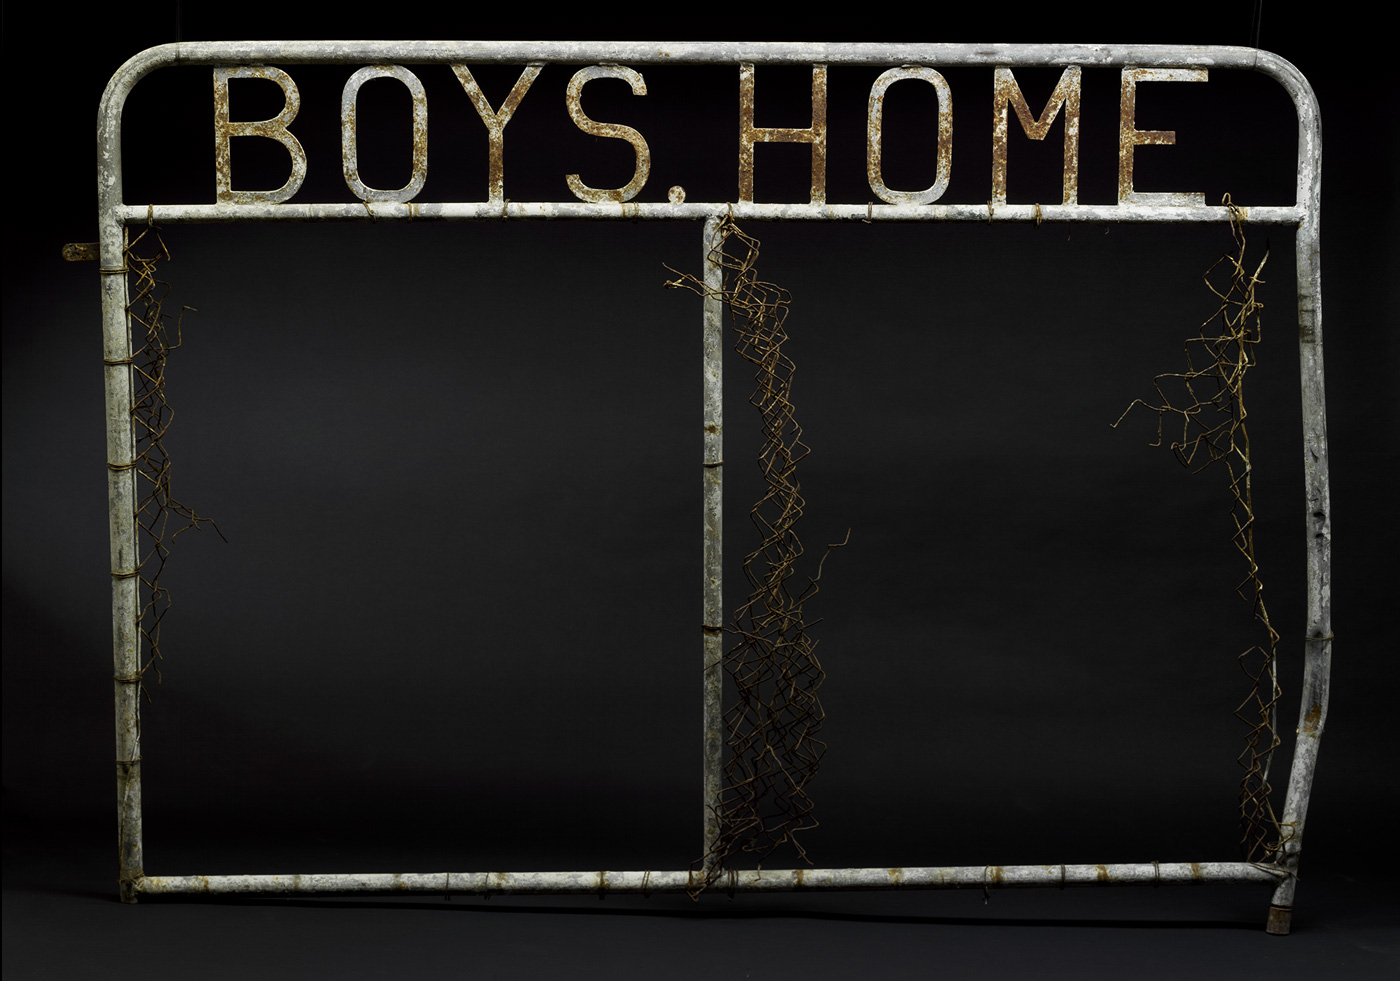 A metal gate panel with welded metal letters at the top which read 'BOYS HOME'. Remnants of wire mesh are attached to the tubular upright components of the gate, which are on the outer edges and in the centre. - click to view larger image